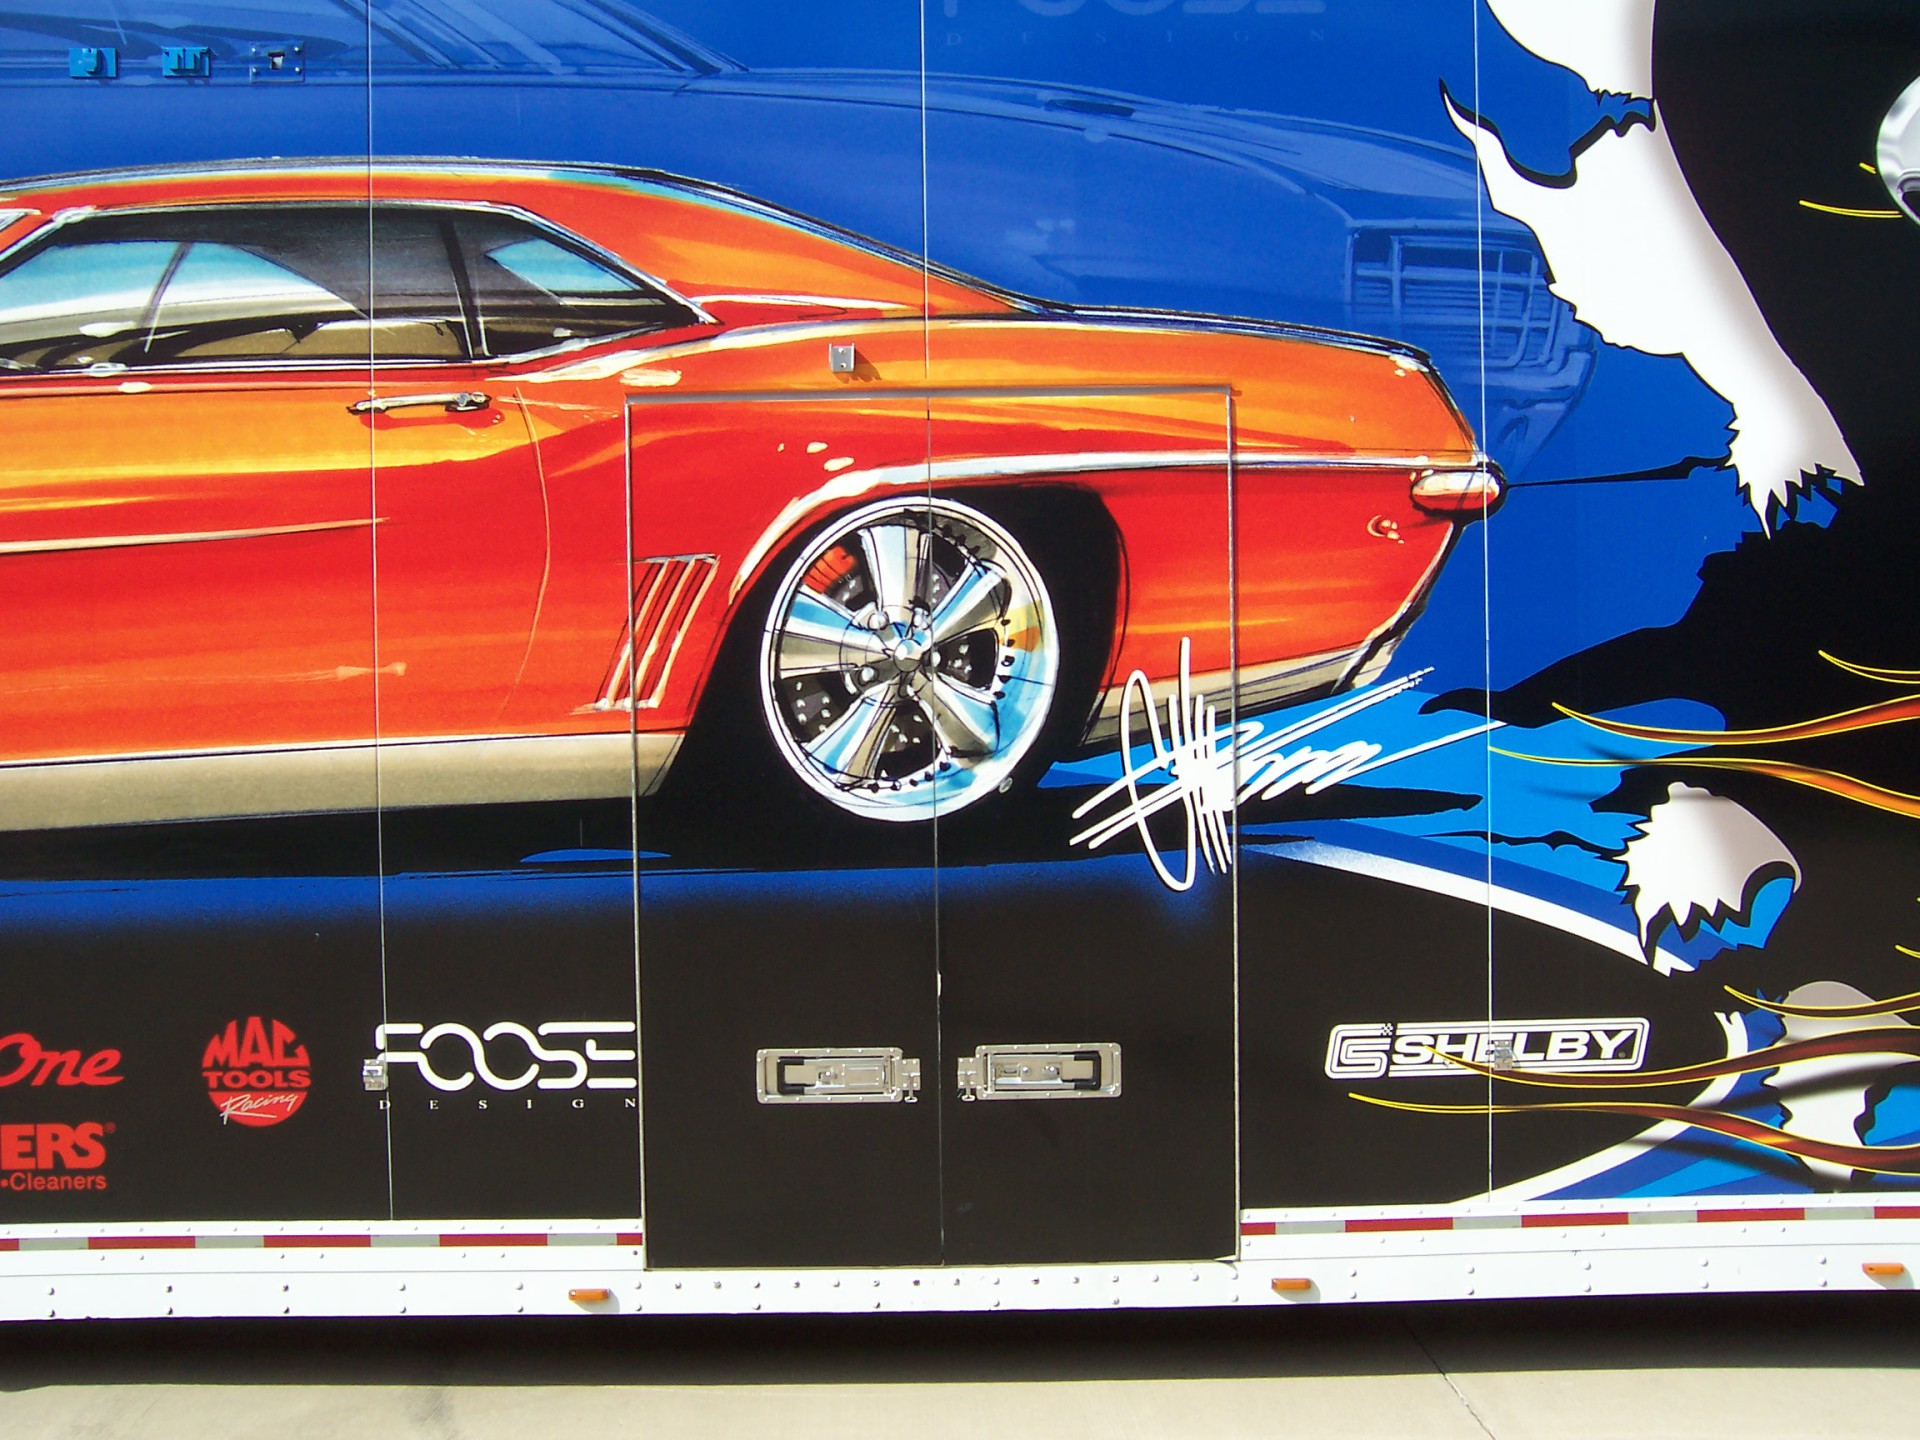 Chip foose vehicle wrap, Trailer wrap, Best vehicle wrap shop Dallas